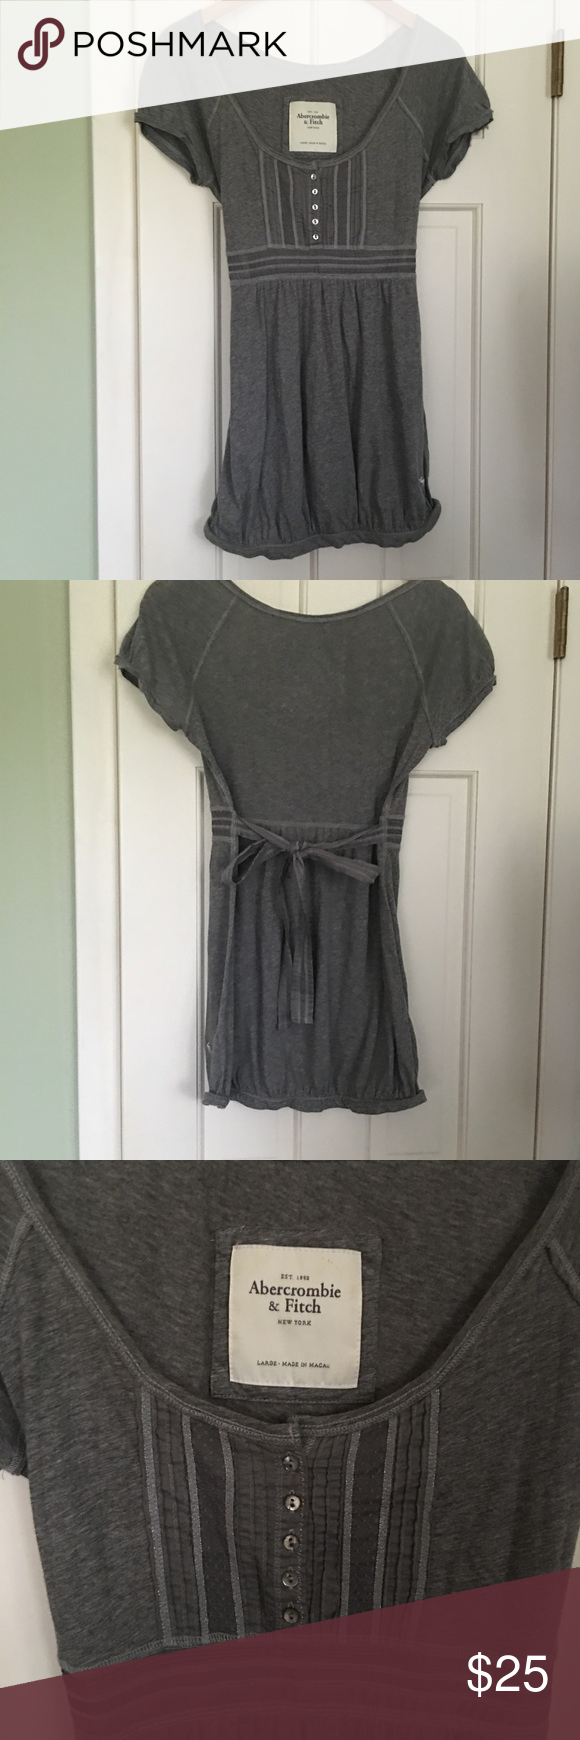 Abercrombie & Fitch blouse Gently used Abercrombie blouse.  Looks great!  100% cotton and machine wash. It ties in the back and is a nice mid-gray. This is a Large but fits like a medium. Abercrombie & Fitch Tops Blouses